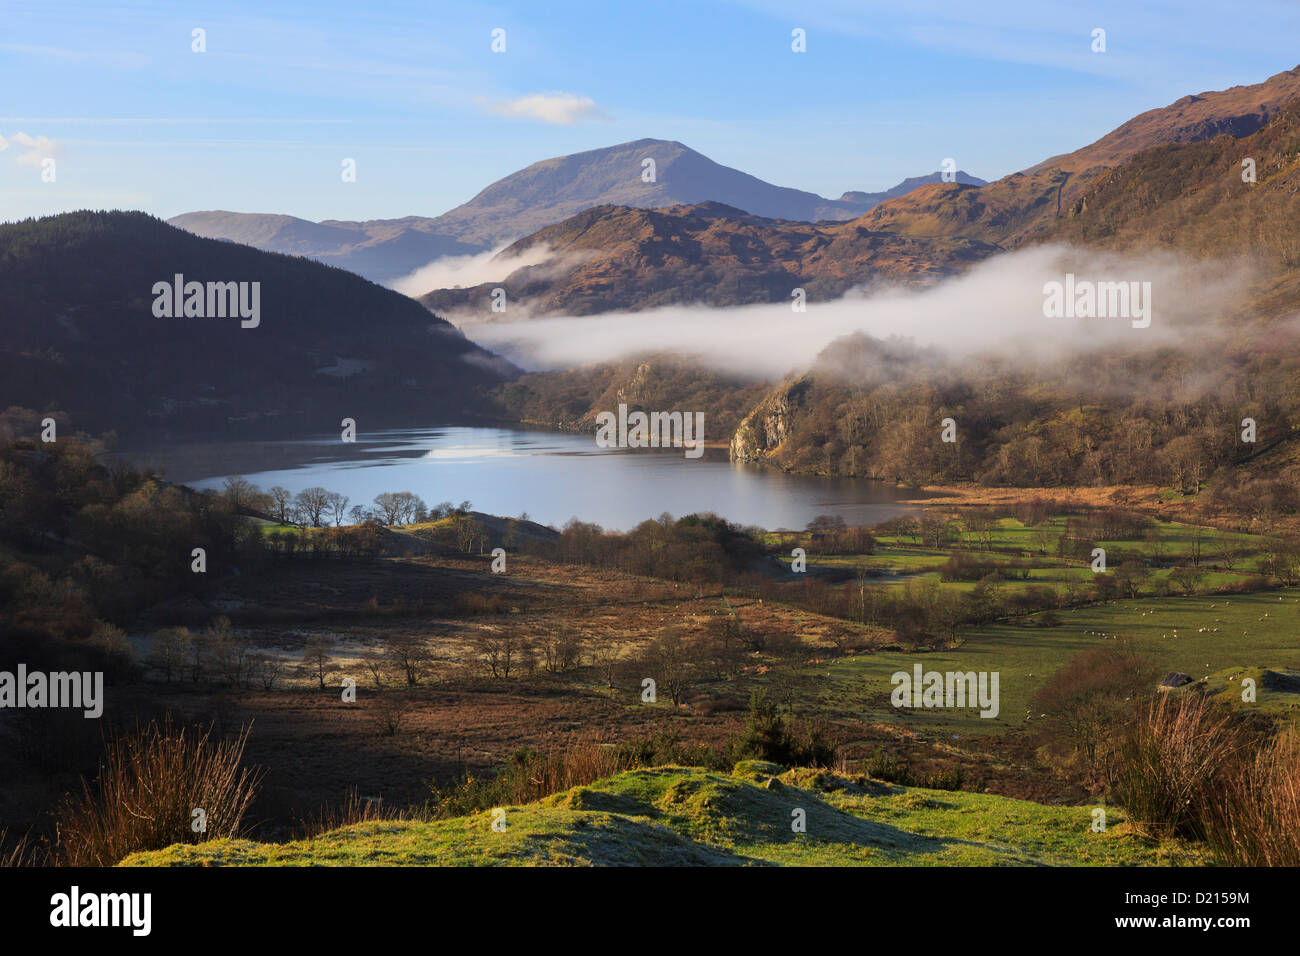 Scenic view along Nant Gwynant valley to Llyn Gwynant lake with mist in mountains of Snowdonia National Park, Nantgwynant, - Stock Image